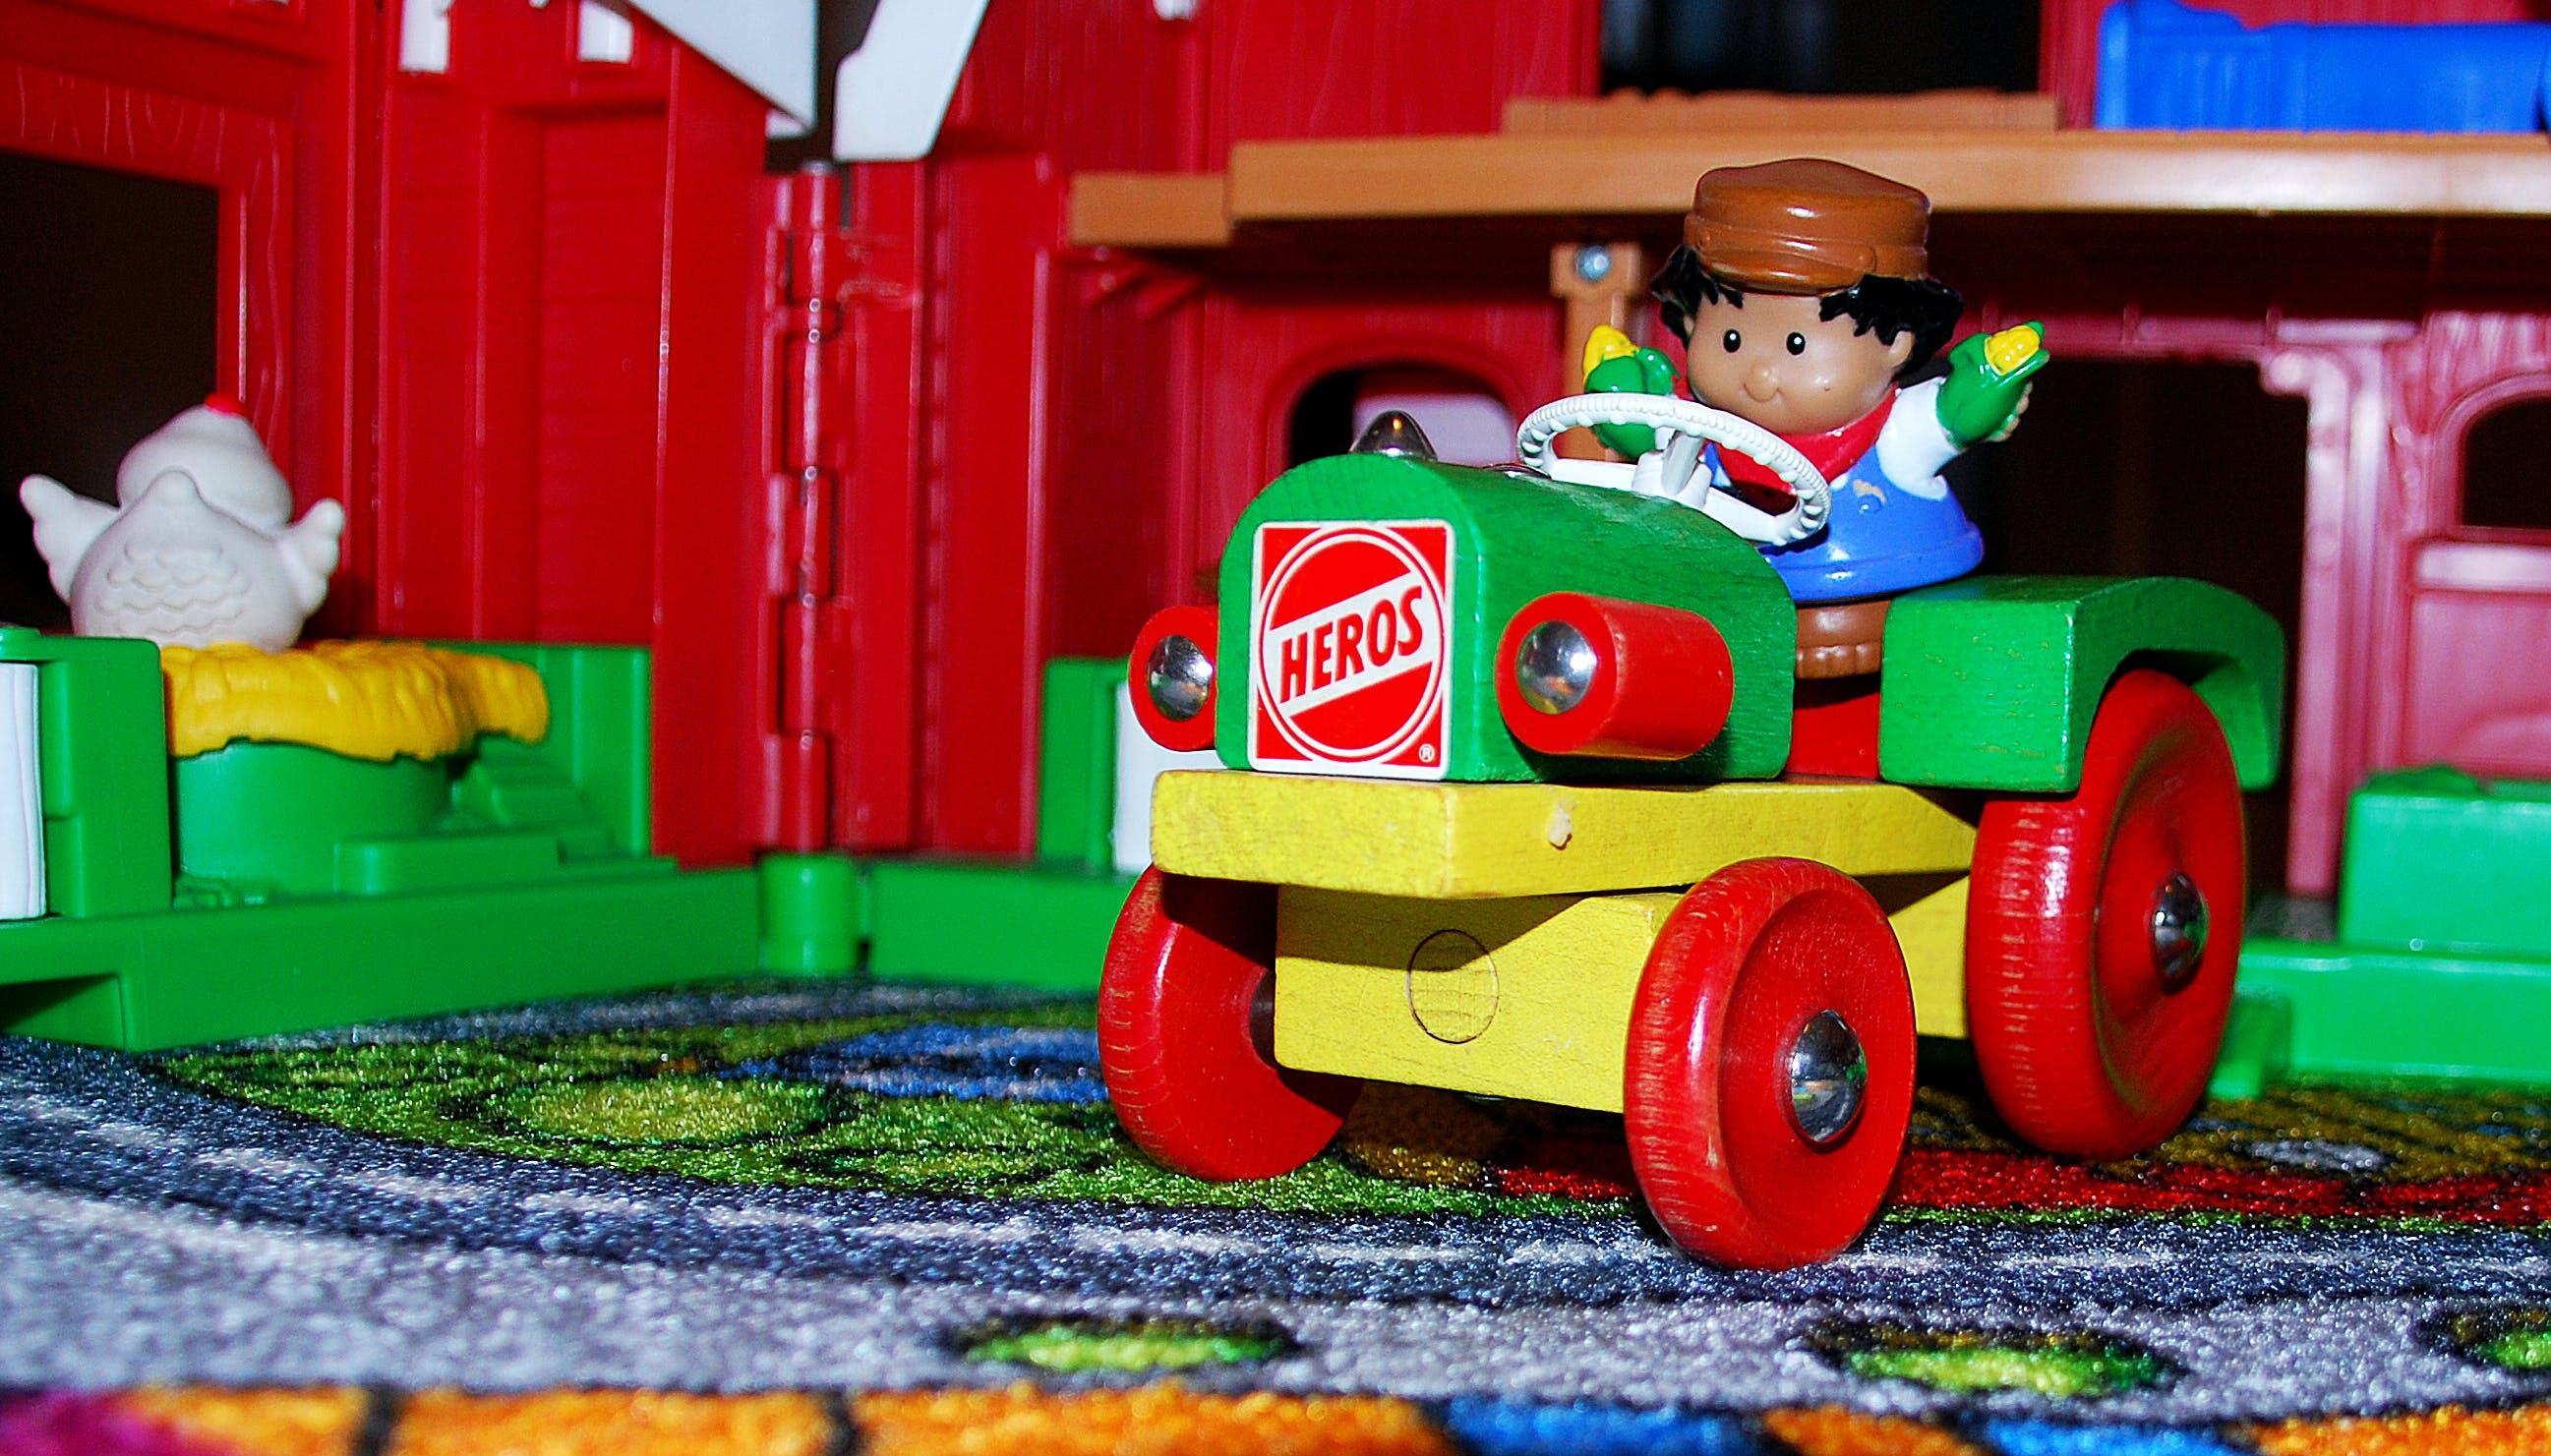 Free stock photo of tractor, toys